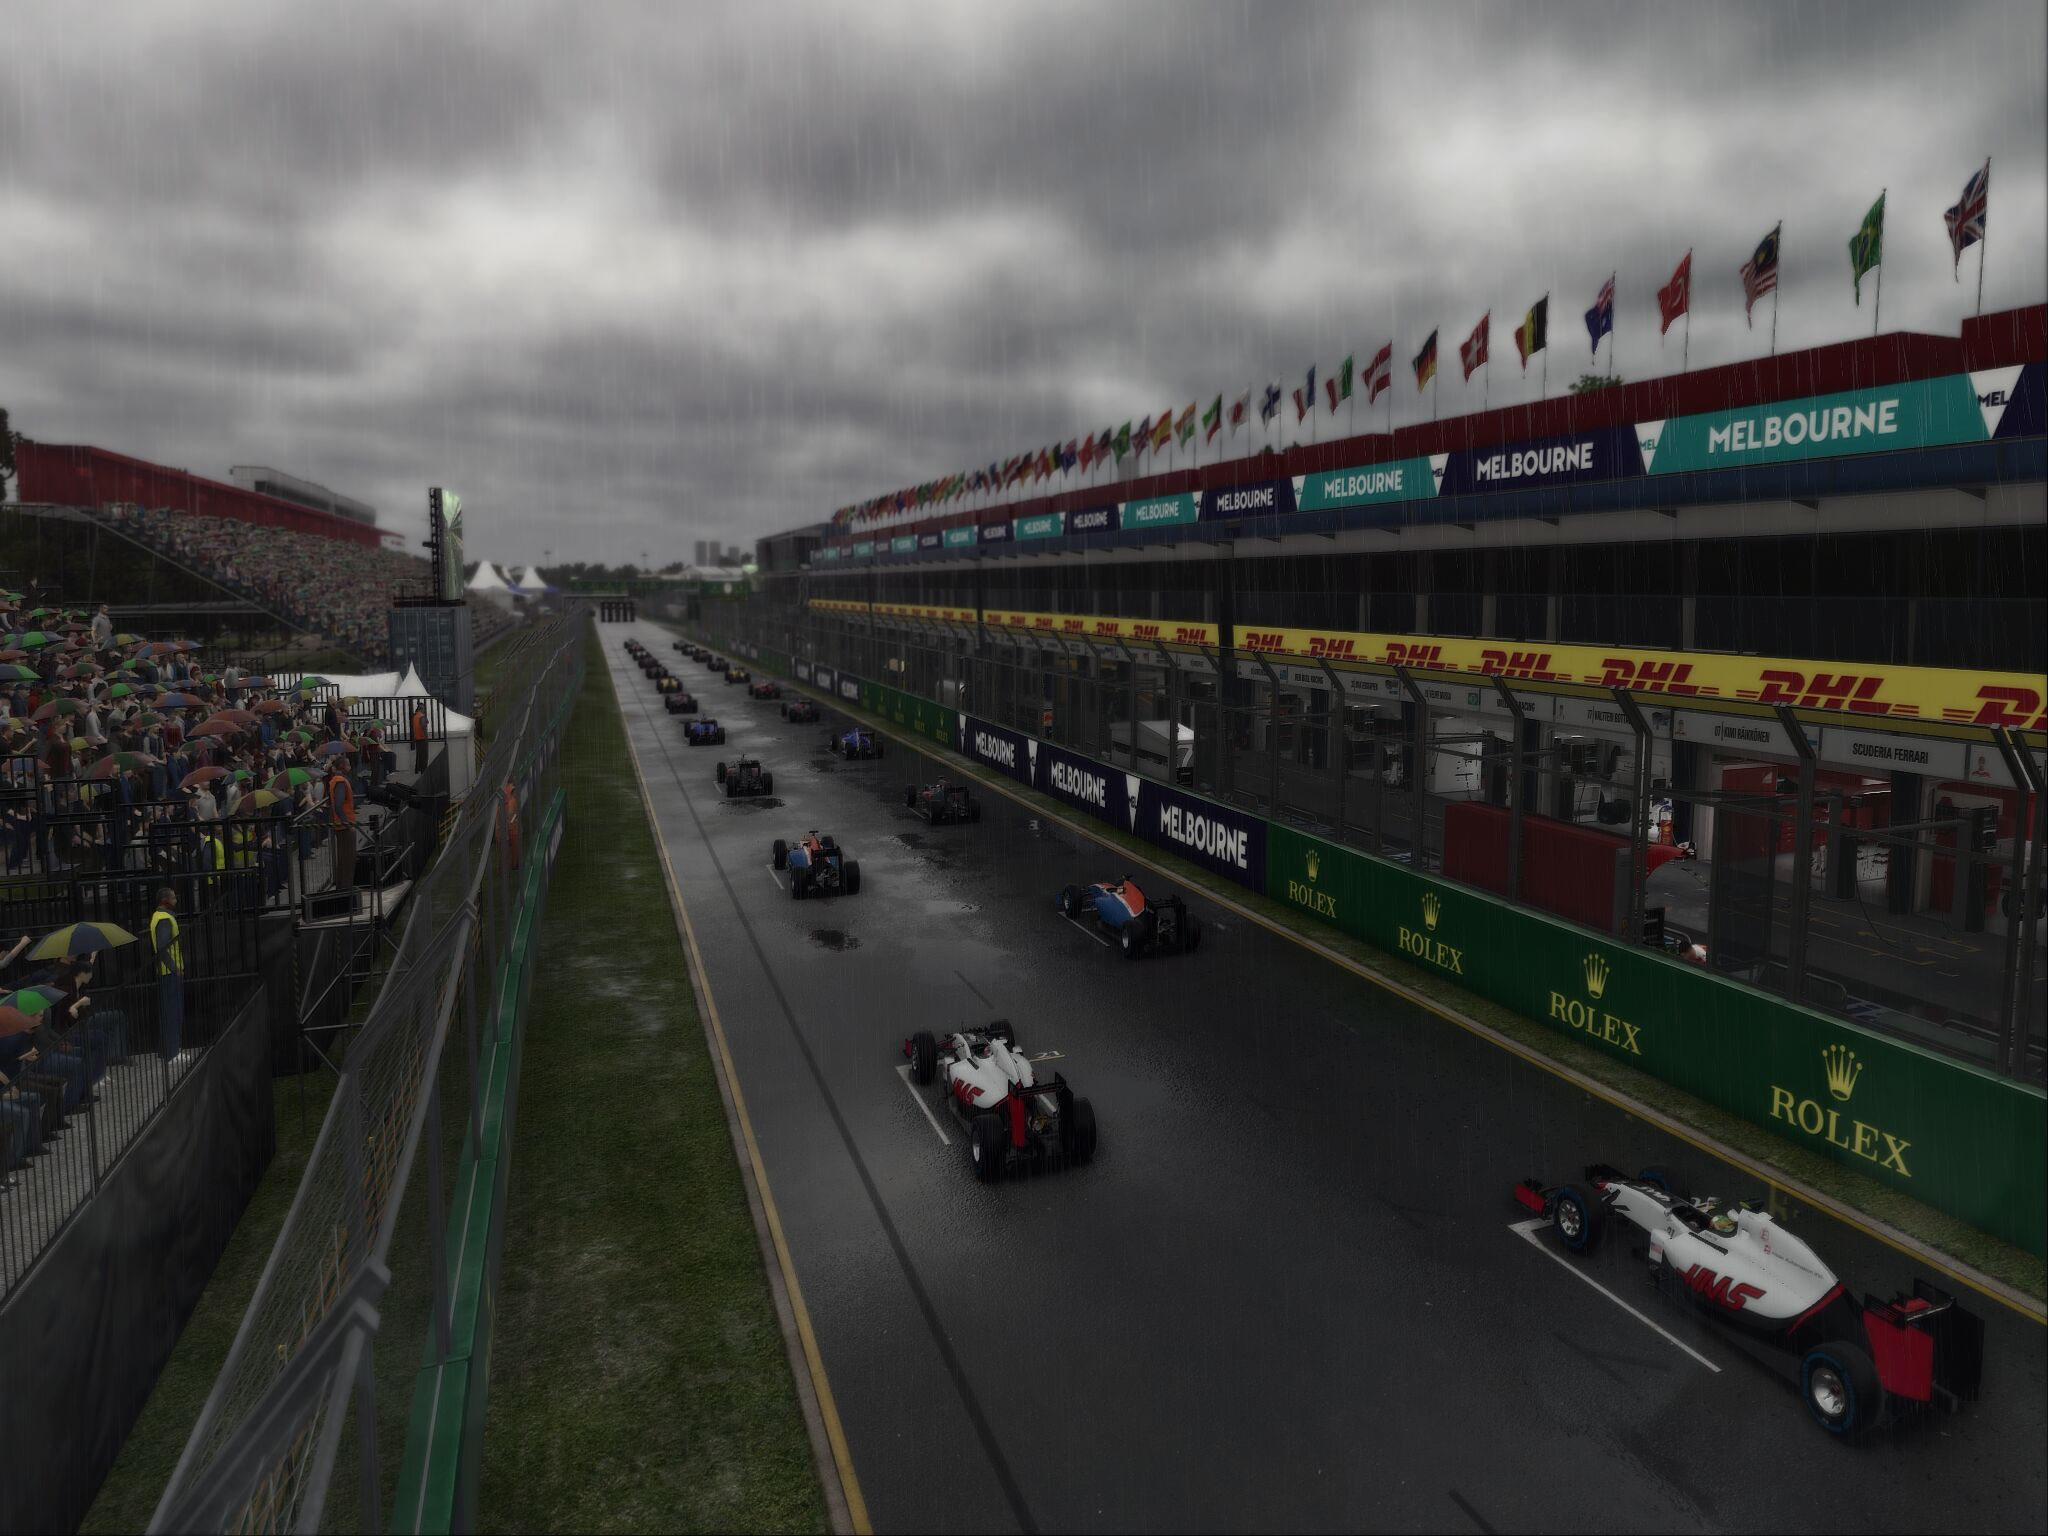 Adaptivesharpen Hdr Technicolor2: Reshade 3.0 Graphics Injector For F12016 By Moiker